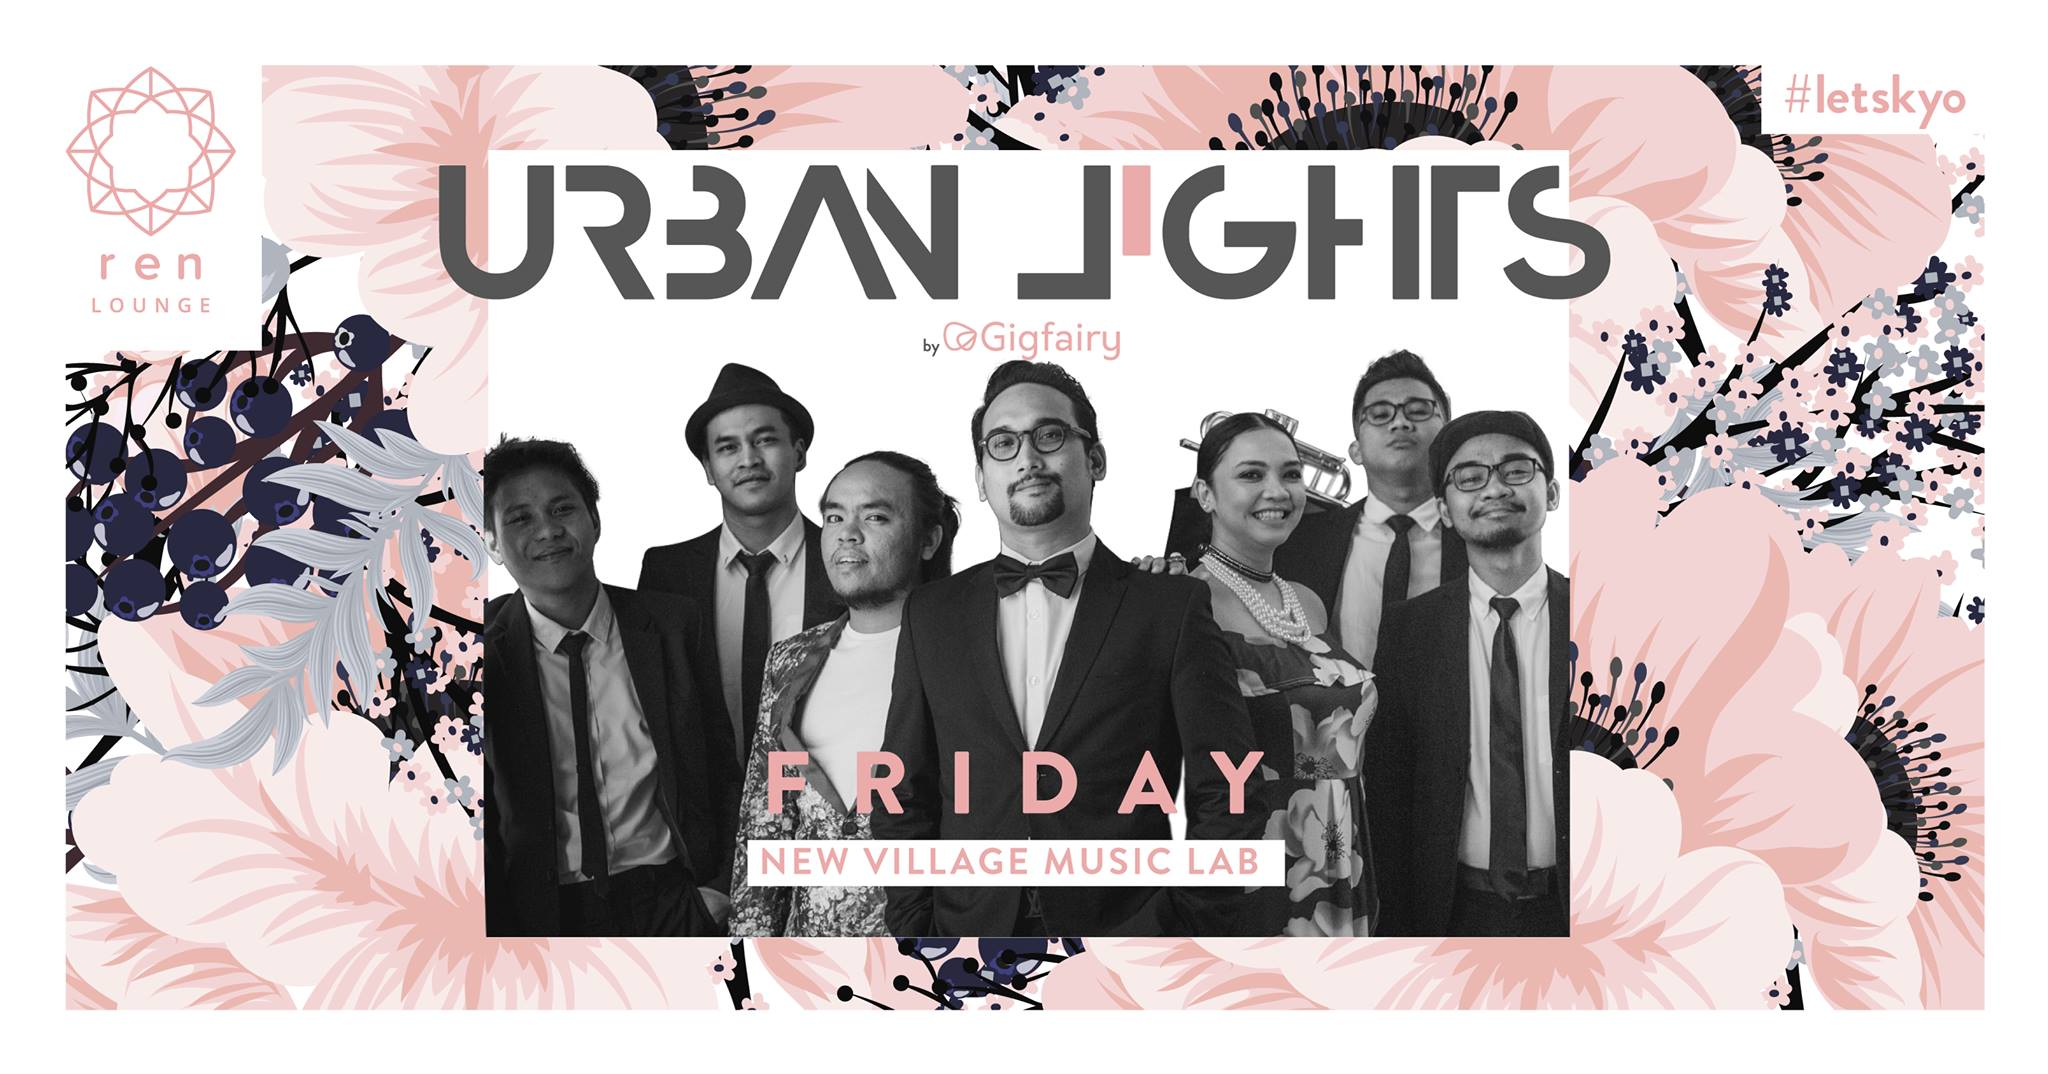 JANUARY 12 : Urban Lights by Gig Fairy at Kyo KL